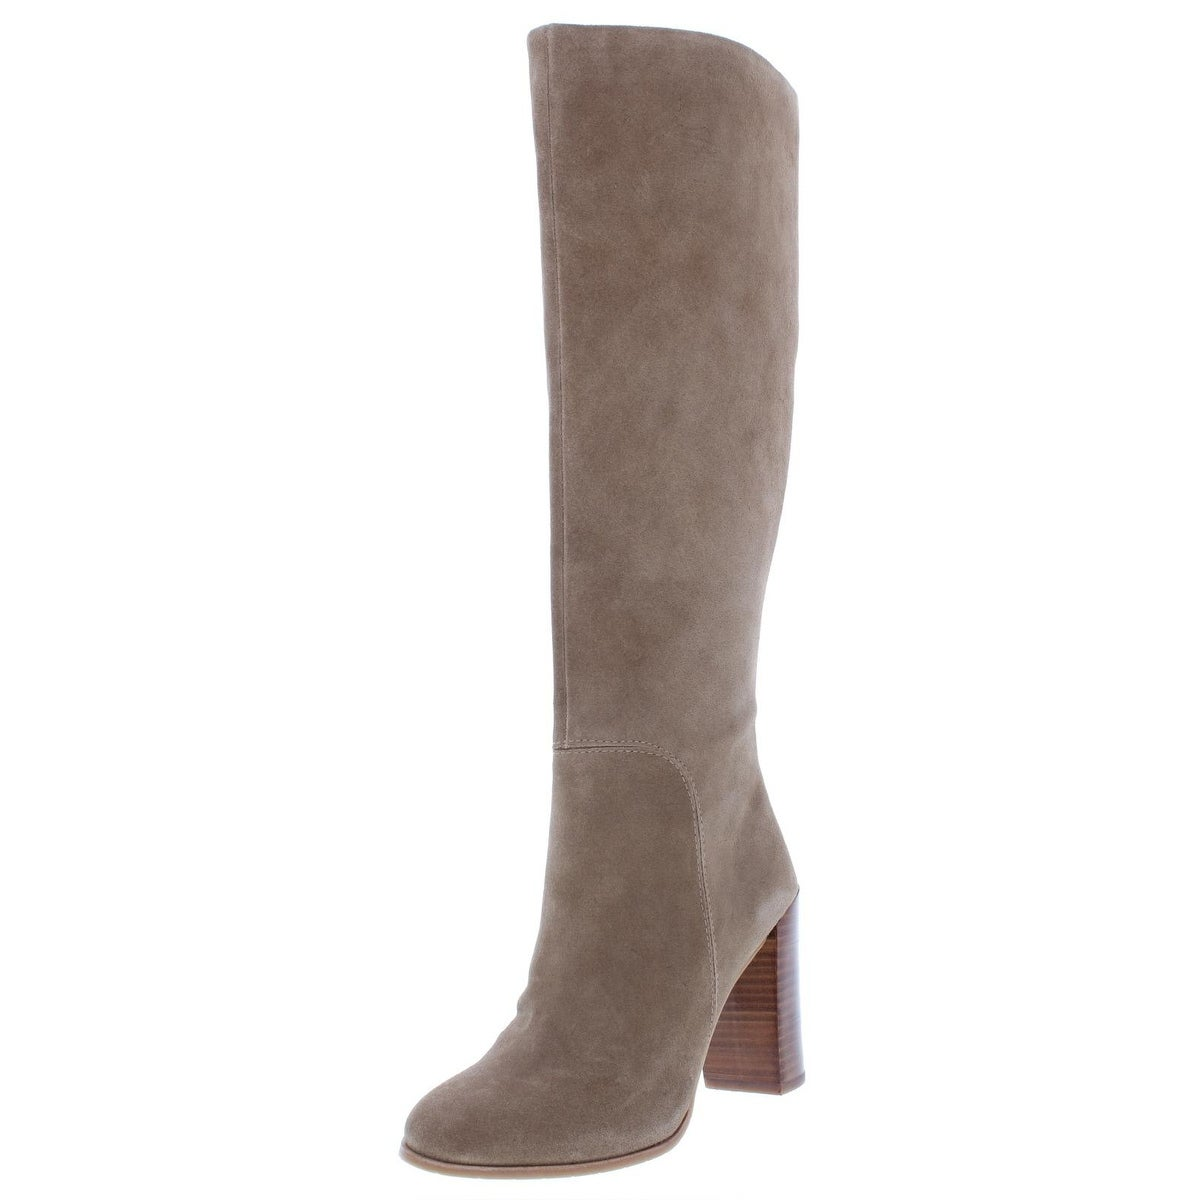 fda70e2a57f Buy Kenneth Cole New York Women s Boots Online at Overstock